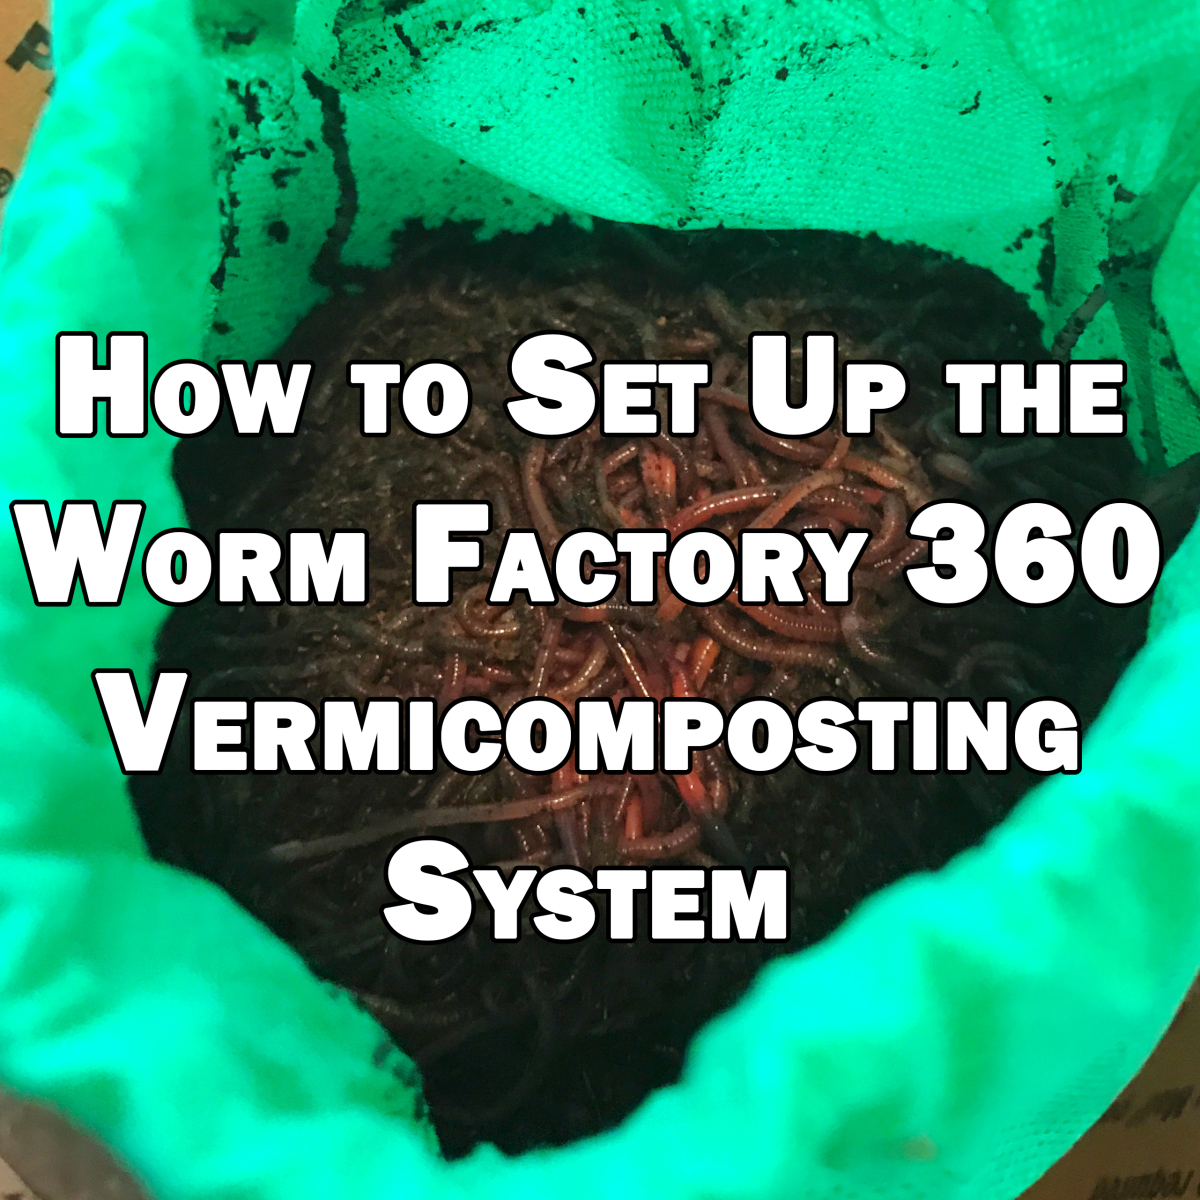 How to Set up the Worm Factory 360 Vermicomposting System: Getting Started With Worm Composting